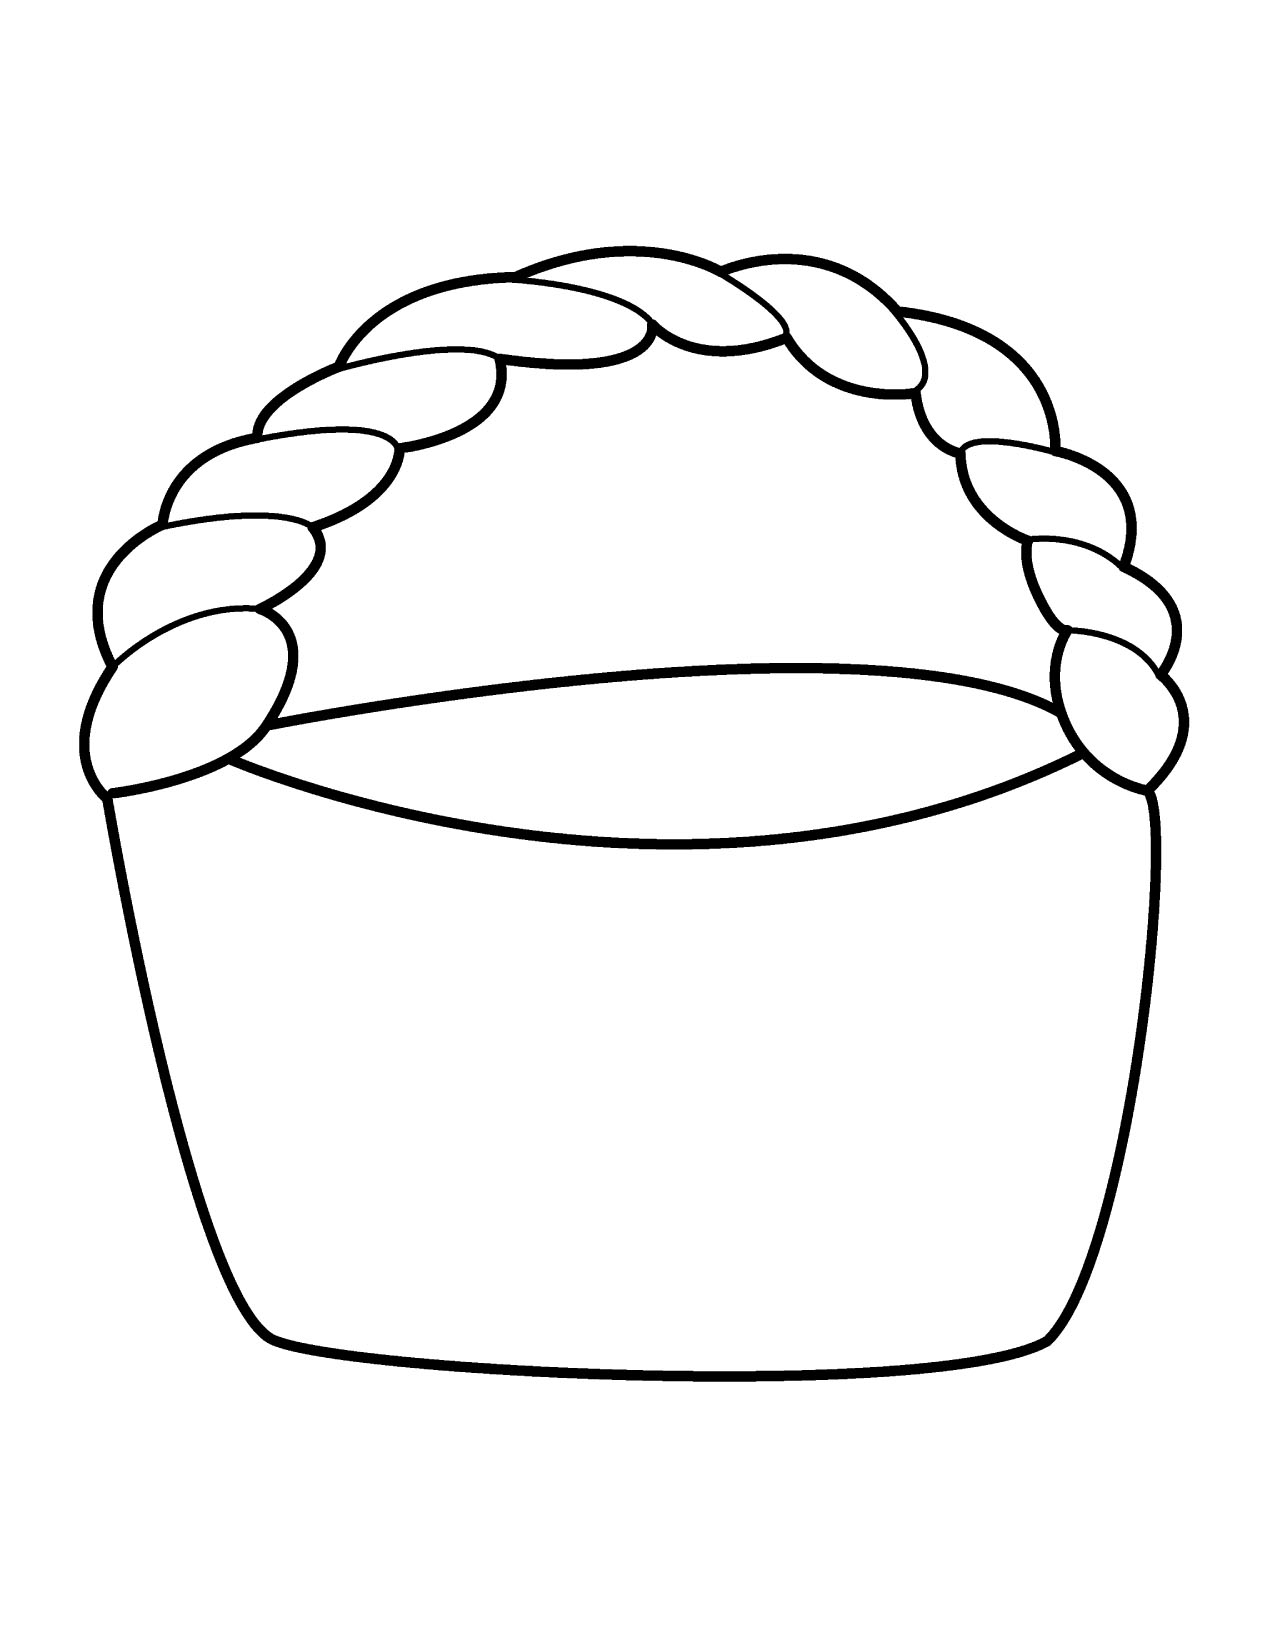 Easter Basket Coloring Page - Coloring Home | 1650x1275